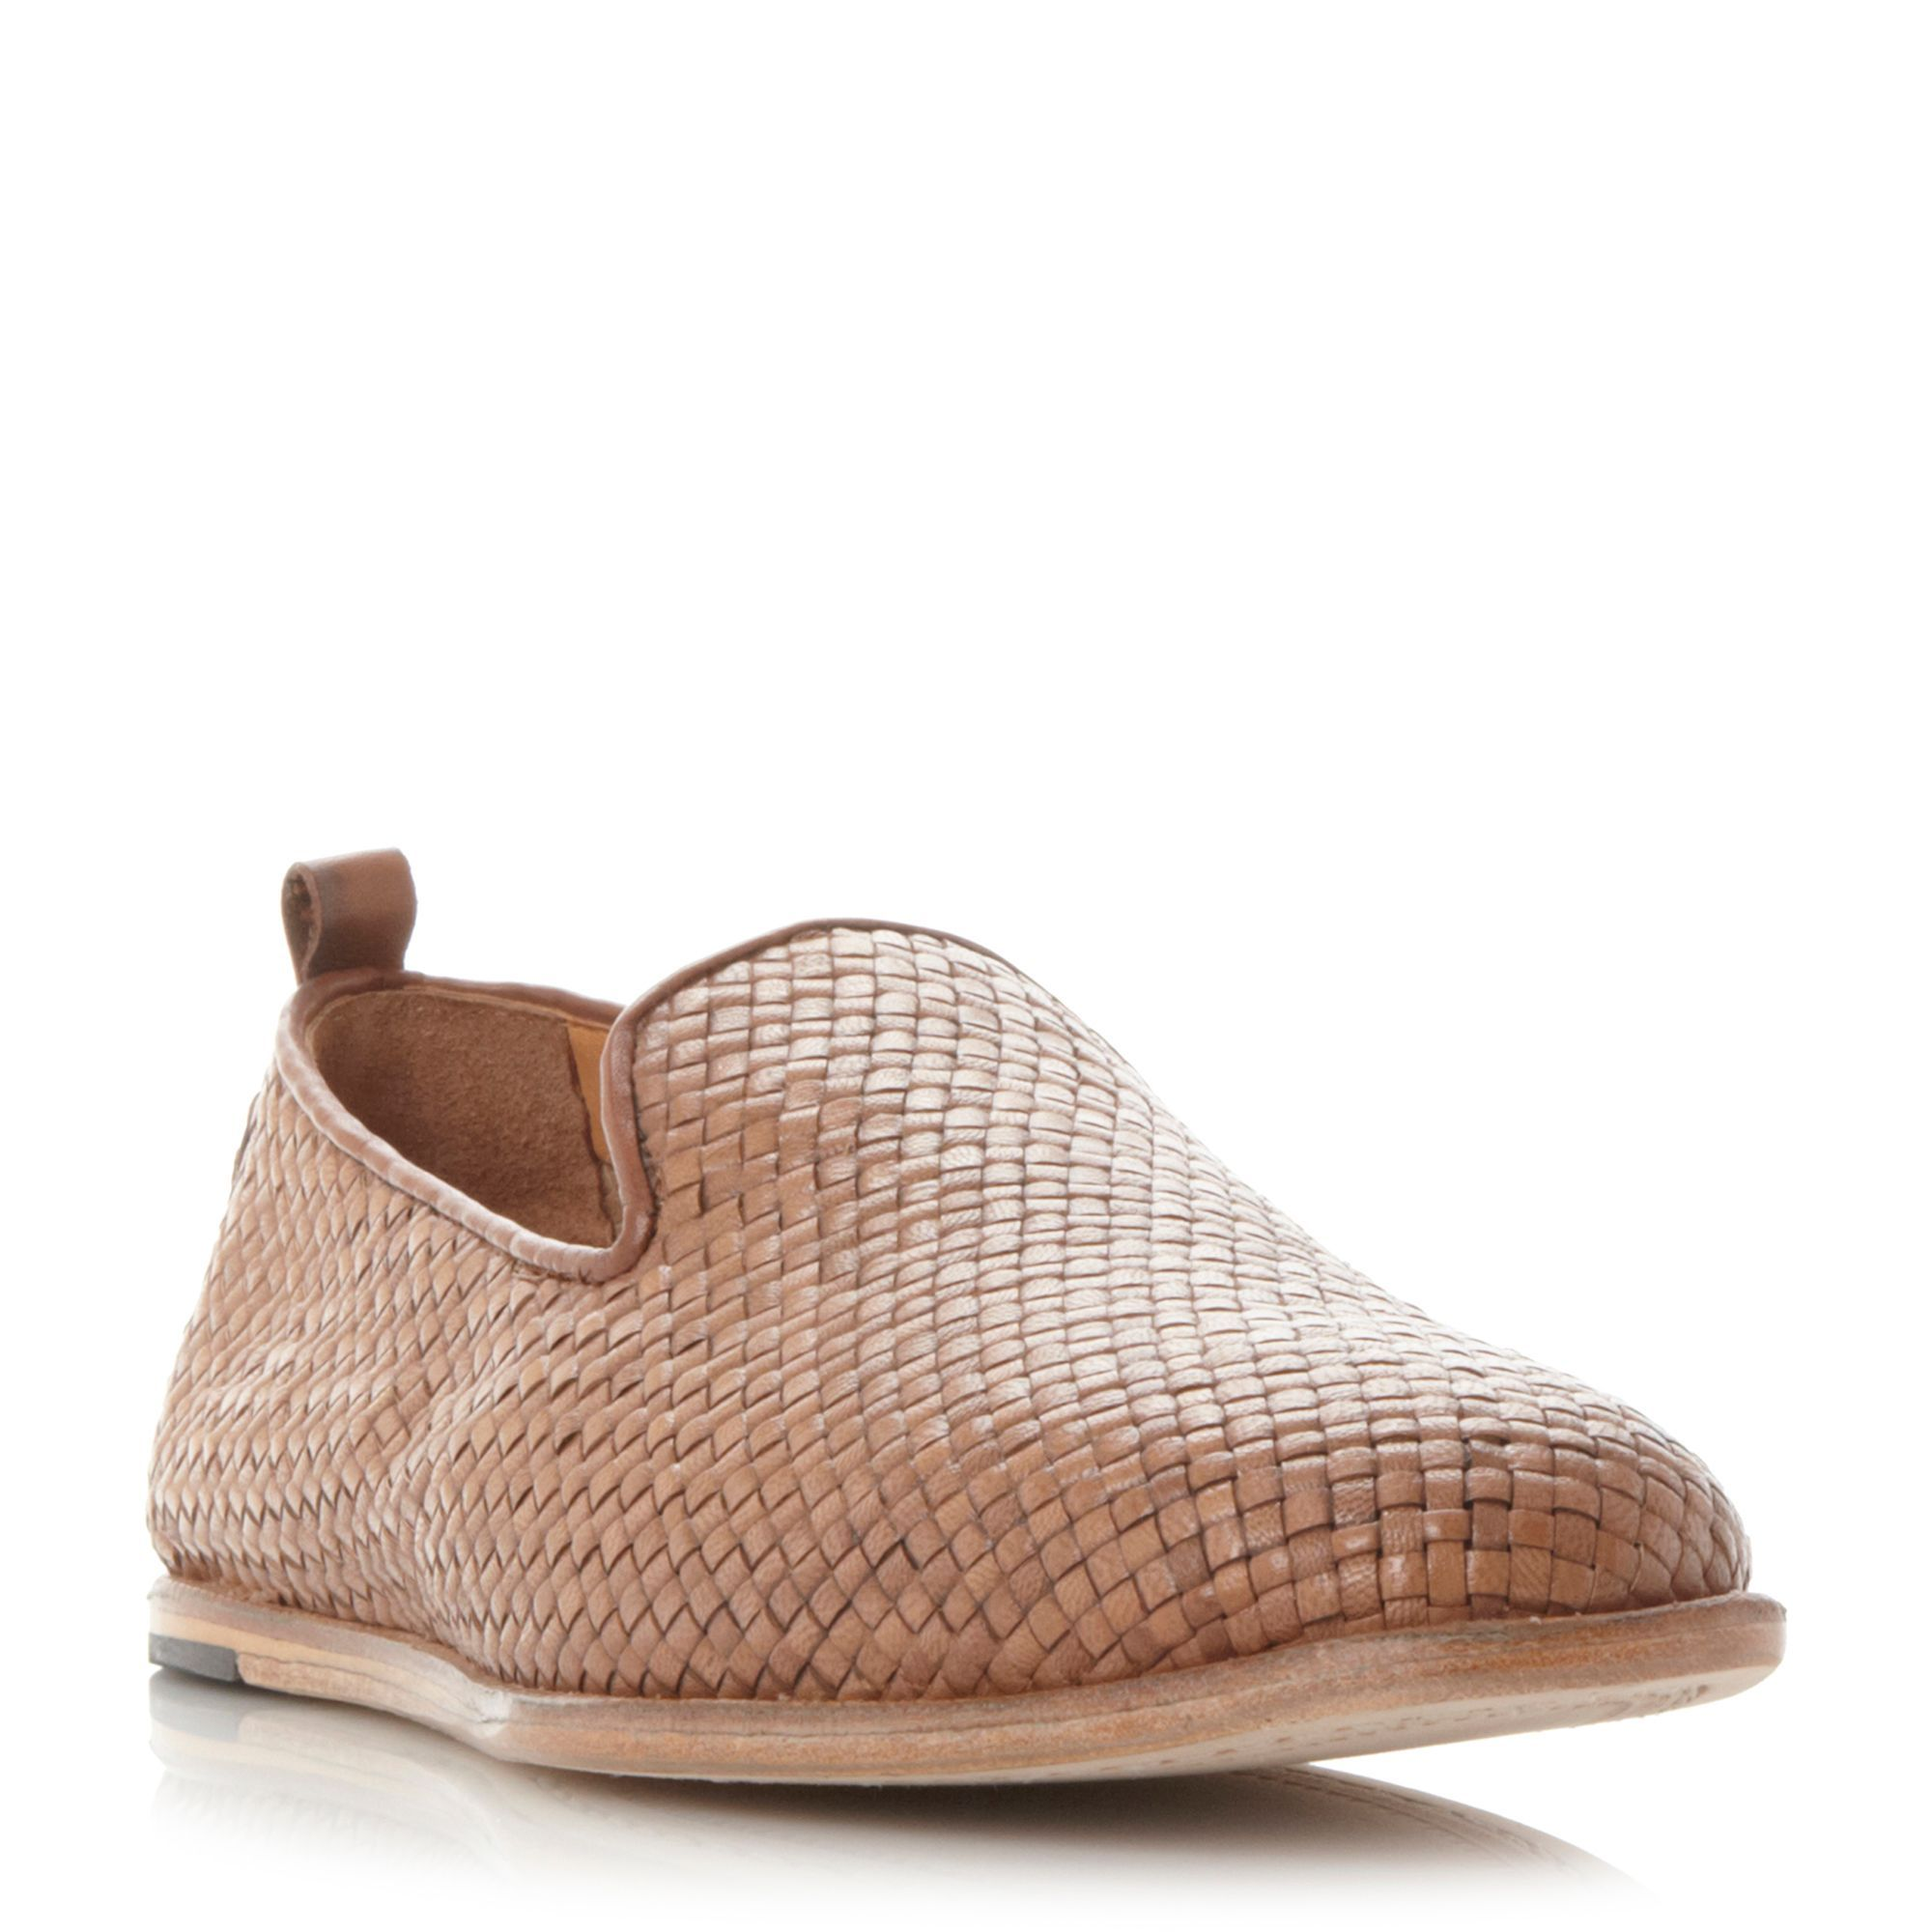 H by Hudson Ipanema woven slip on sandals, Tan